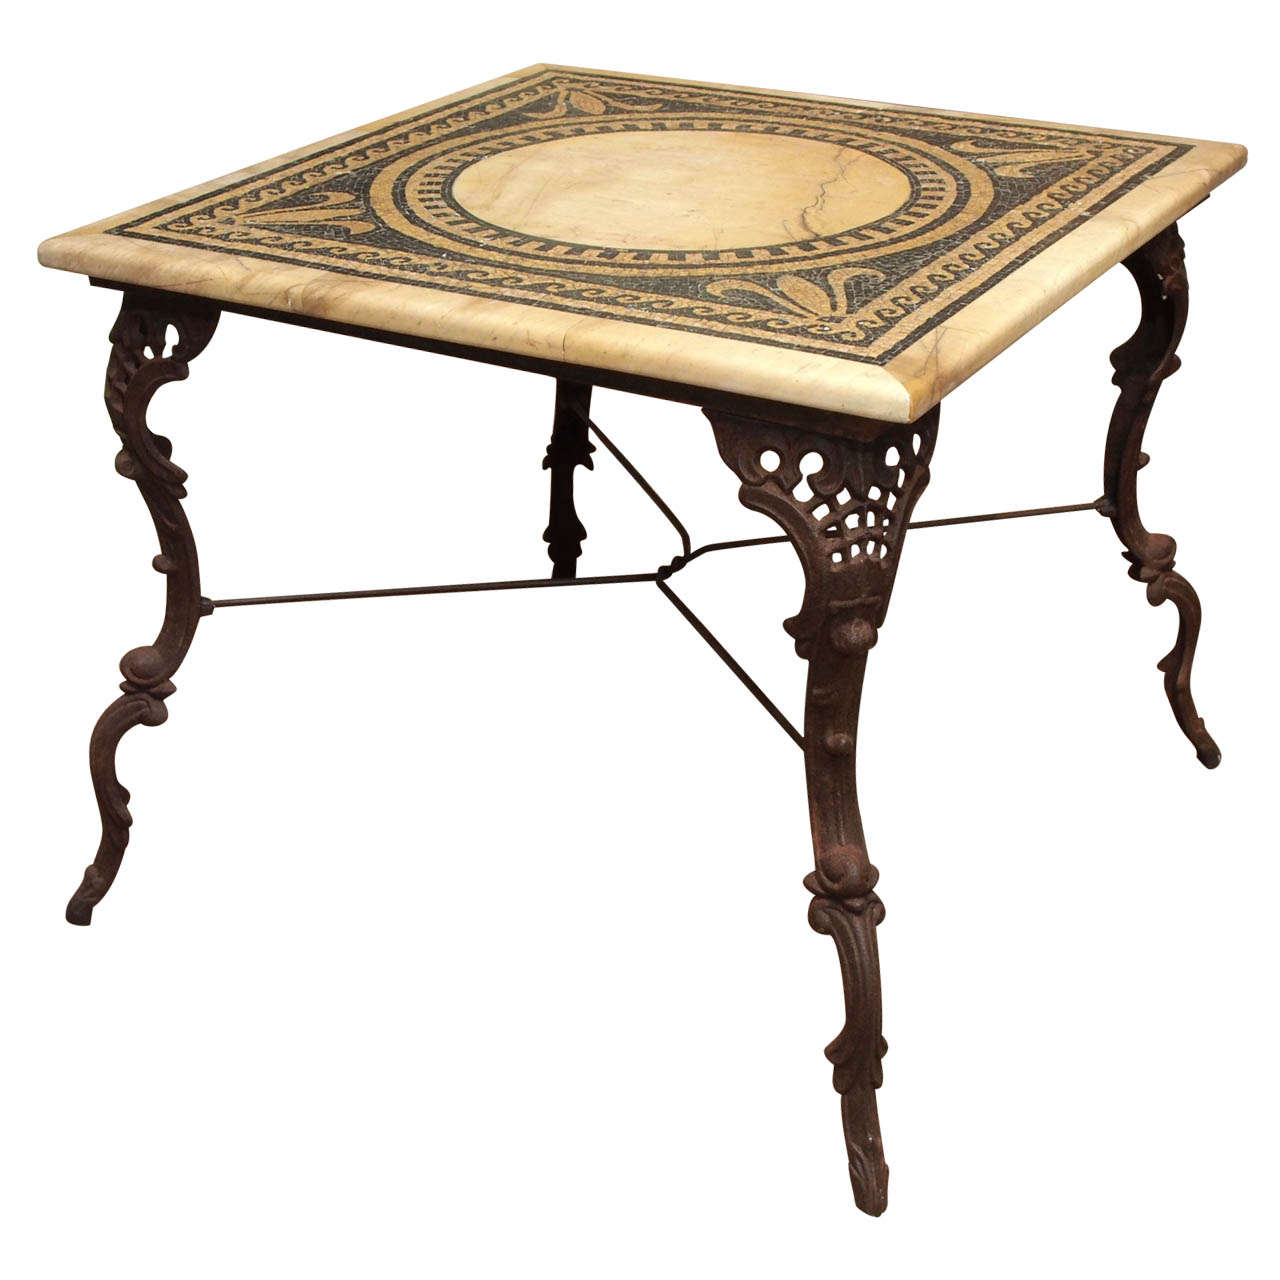 19th Century Table with Marble and Mosaic Top, Iron Base